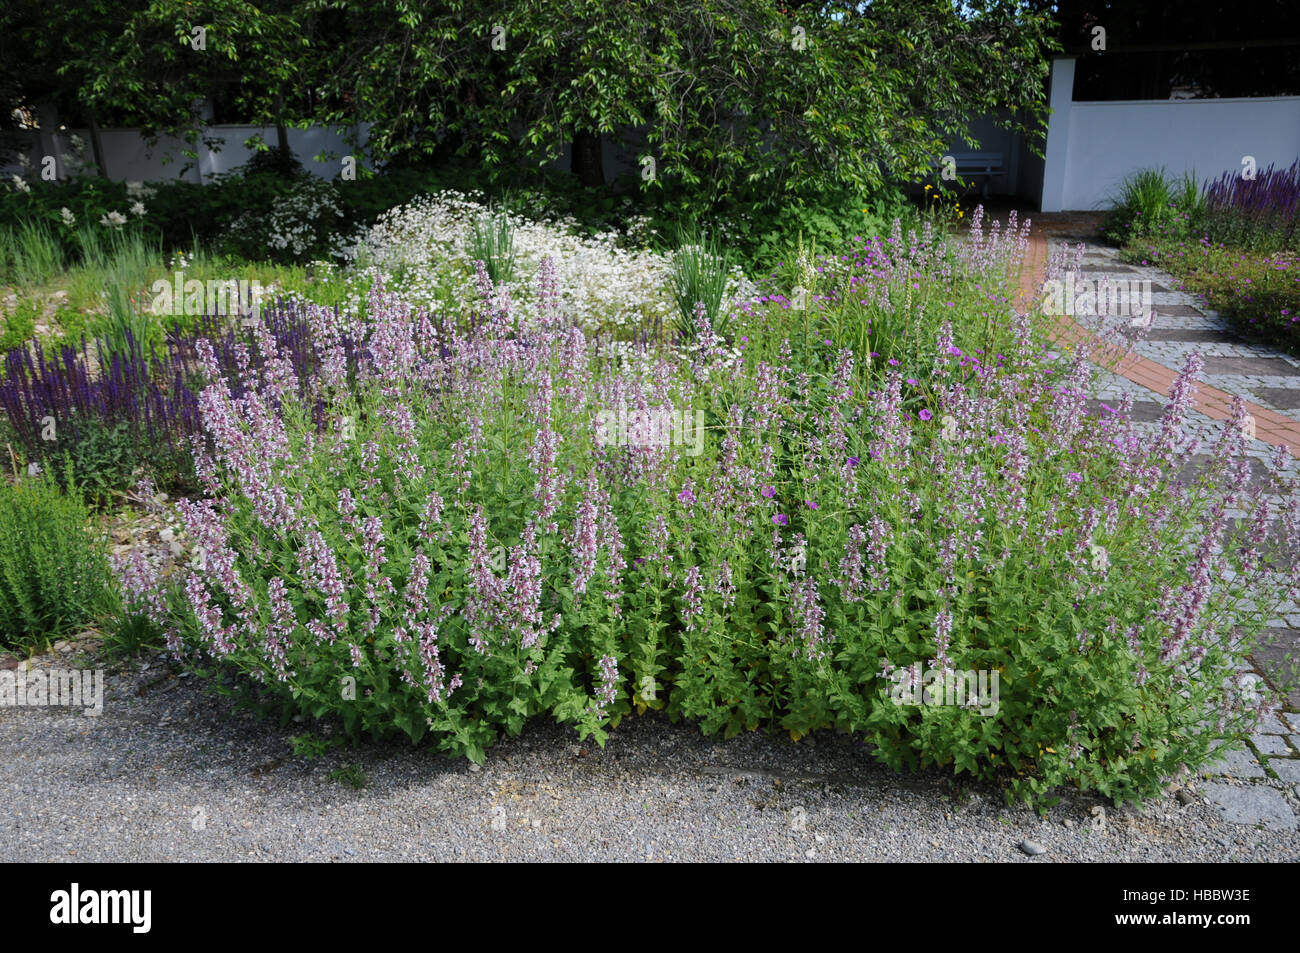 Stachys officinalis Rosea, Woundwort Stock Photo